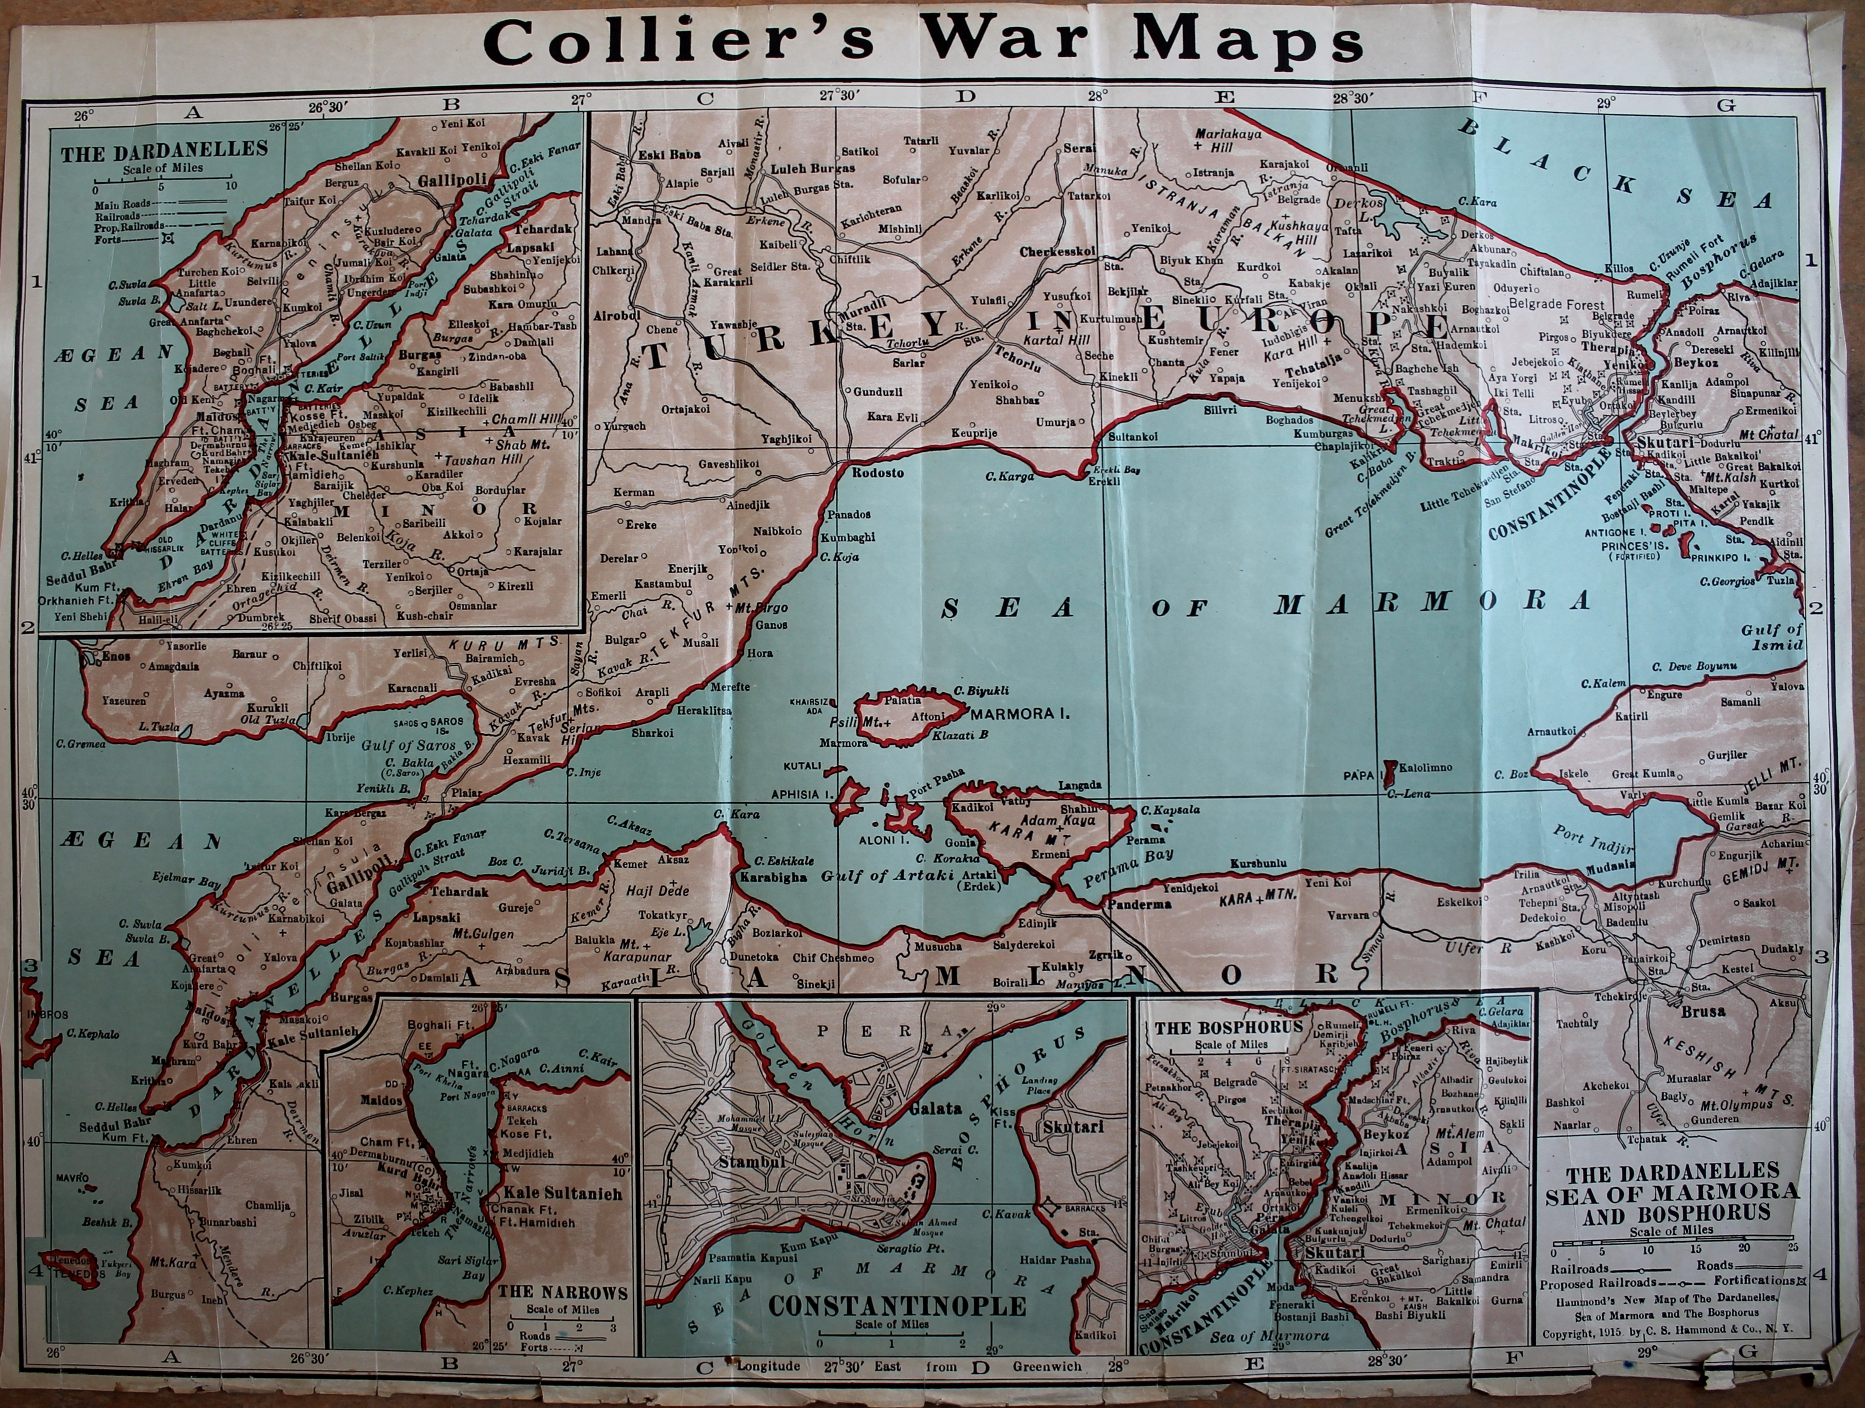 Collier's War Maps of the Dardanelles, the Sea of Marmora, and the Bosphorus, with insets for the Dardanelles and the Gallipoli Peninsula, the Narrows of the Dardanelles, Constantinople (Istanbul), and the Bosphorus between the Sea of Marmora and the Black Sea